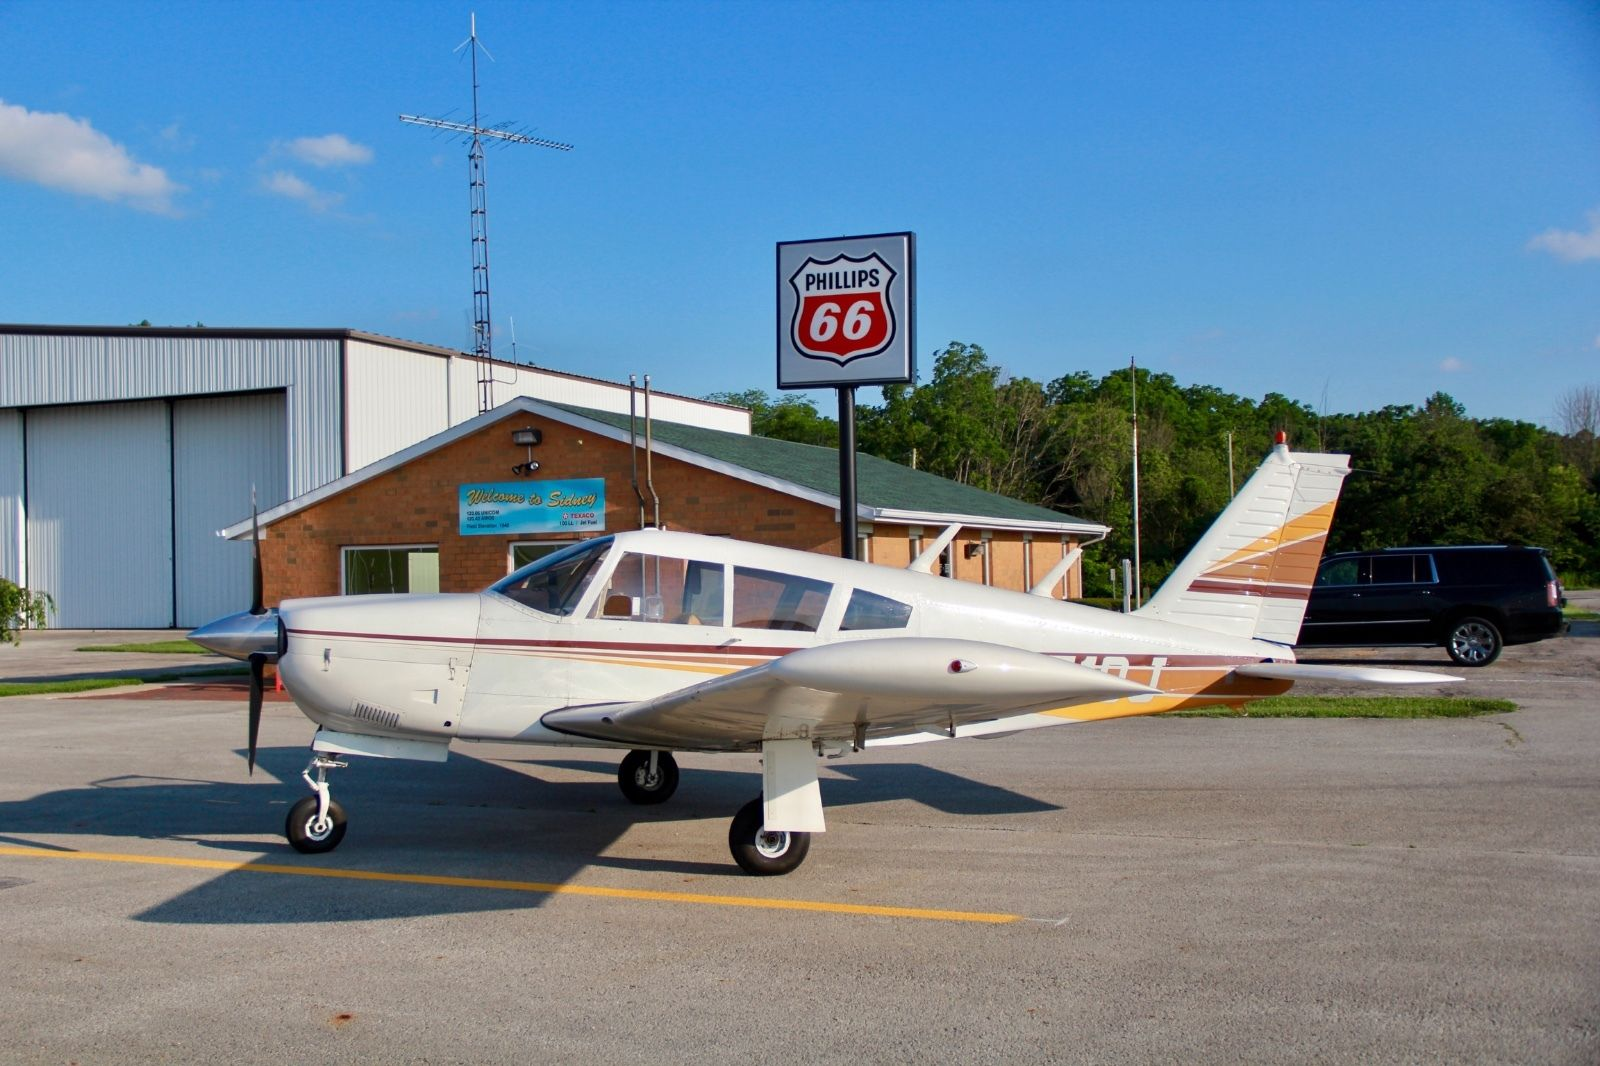 hangared 1968 Piper Arrow aircraft for sale